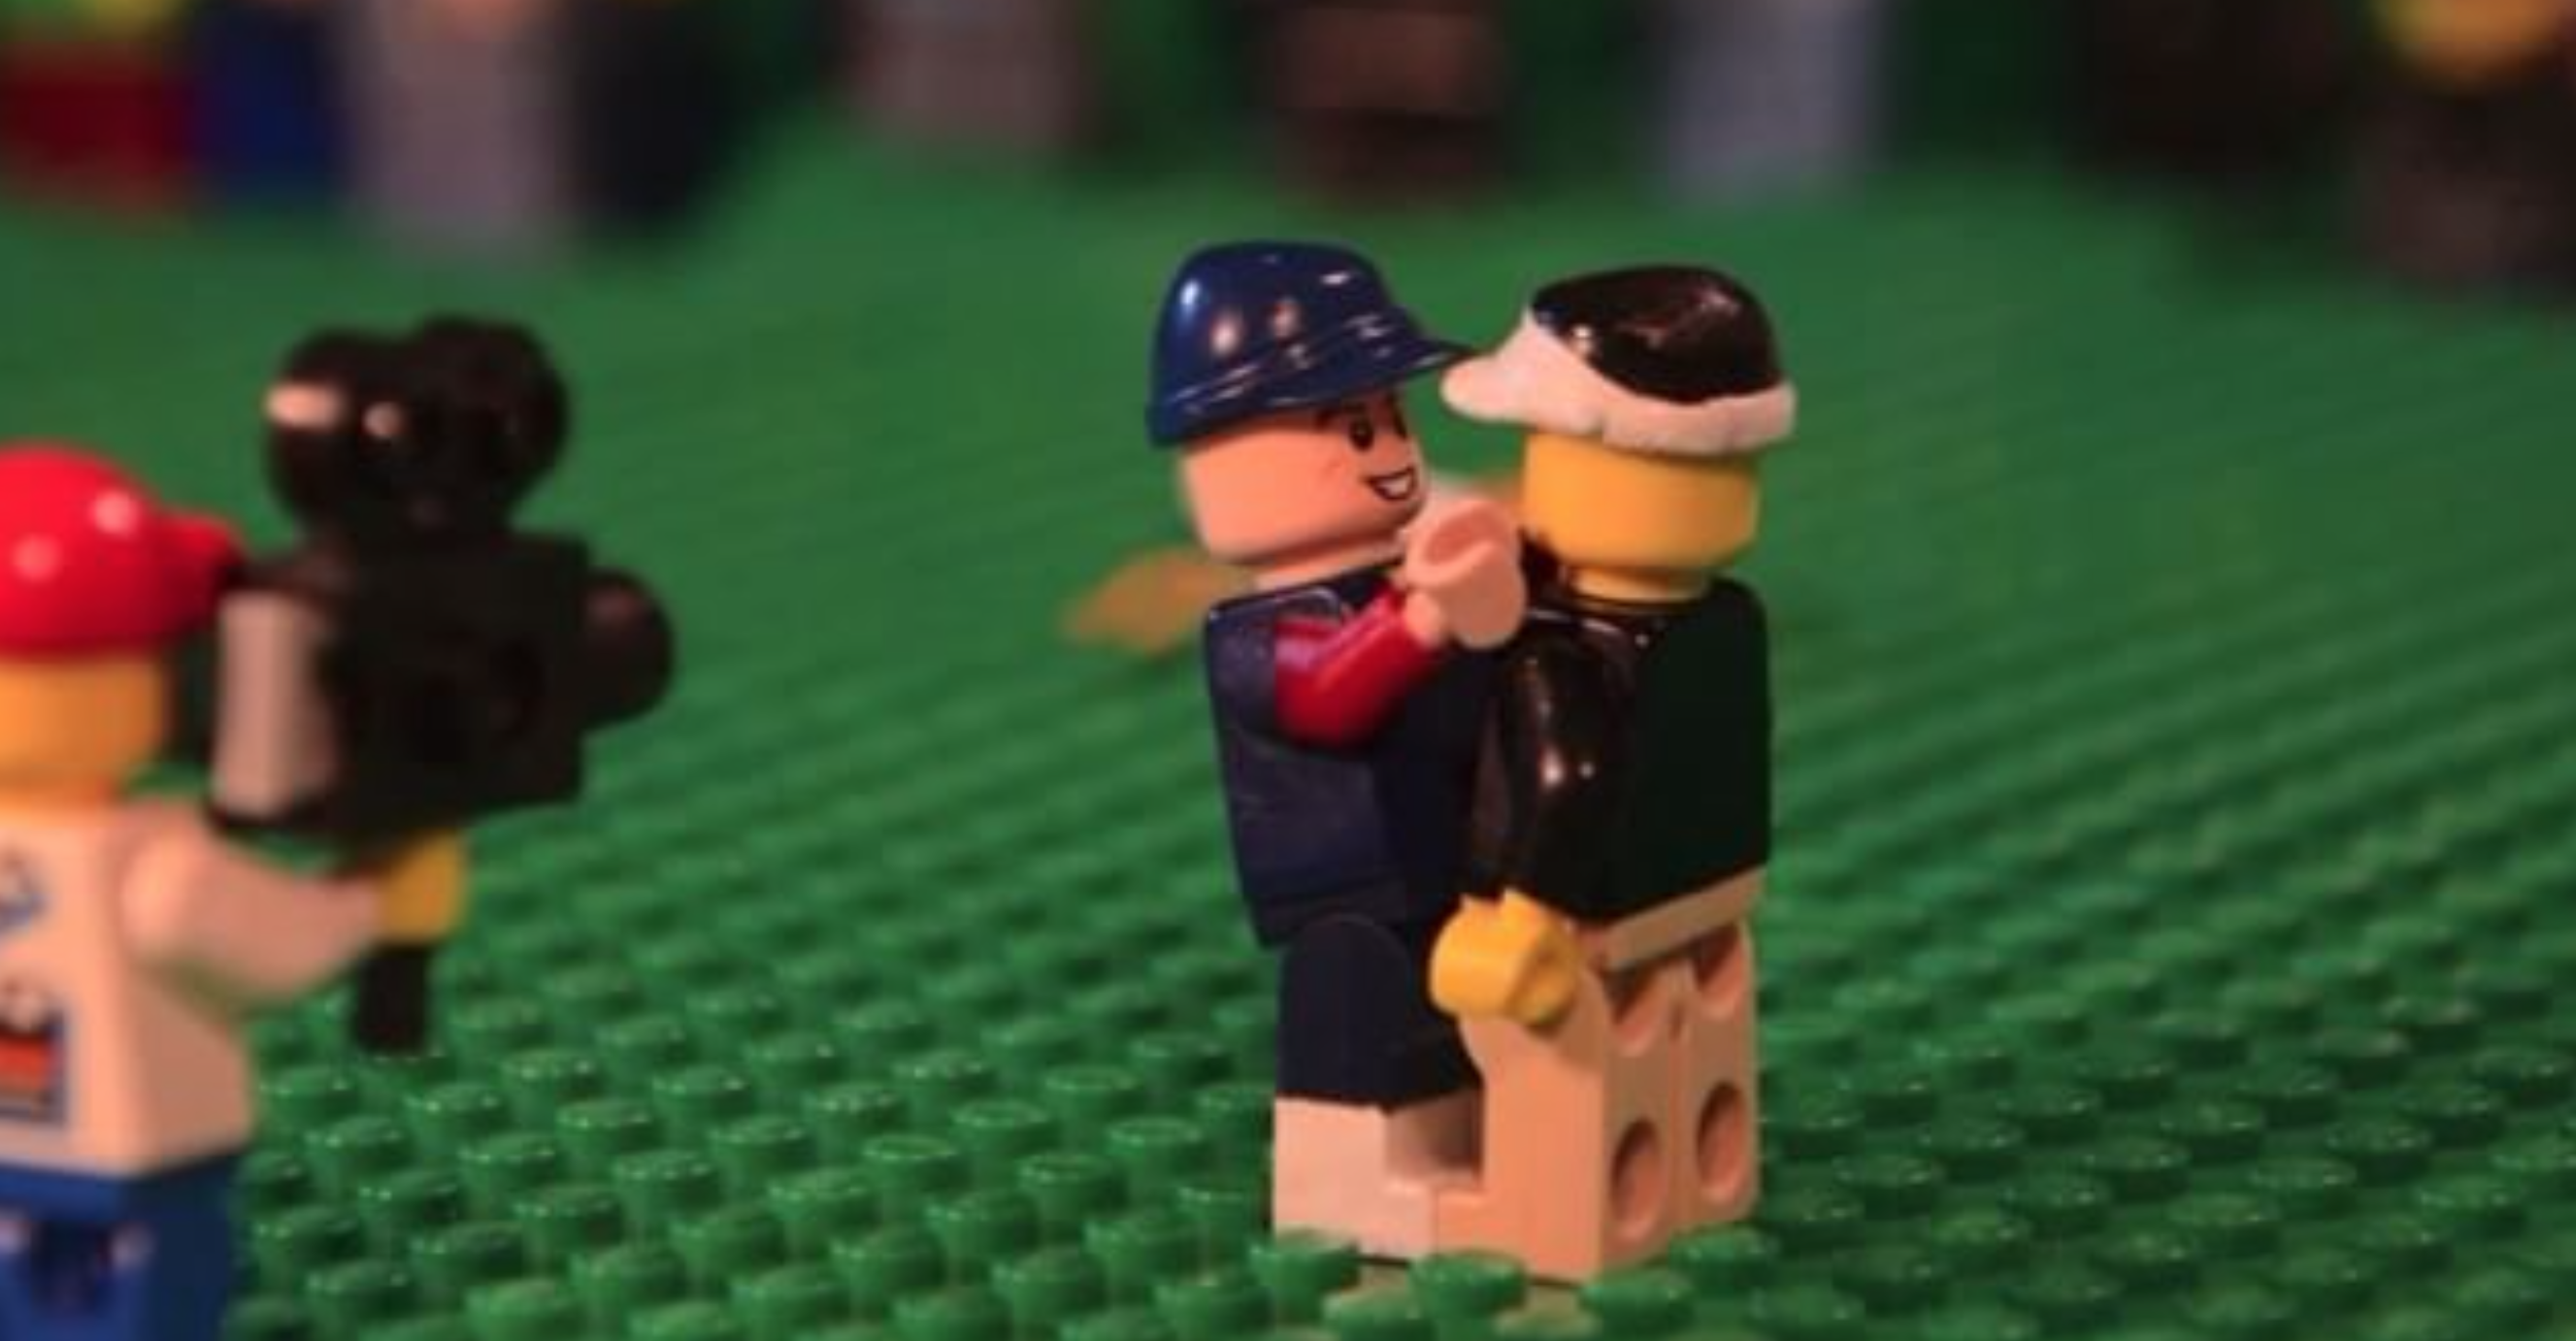 Jarod Jacobs makes stop-motion videos like this one by using Legos. Follow him on Twitter at @goldyeller.